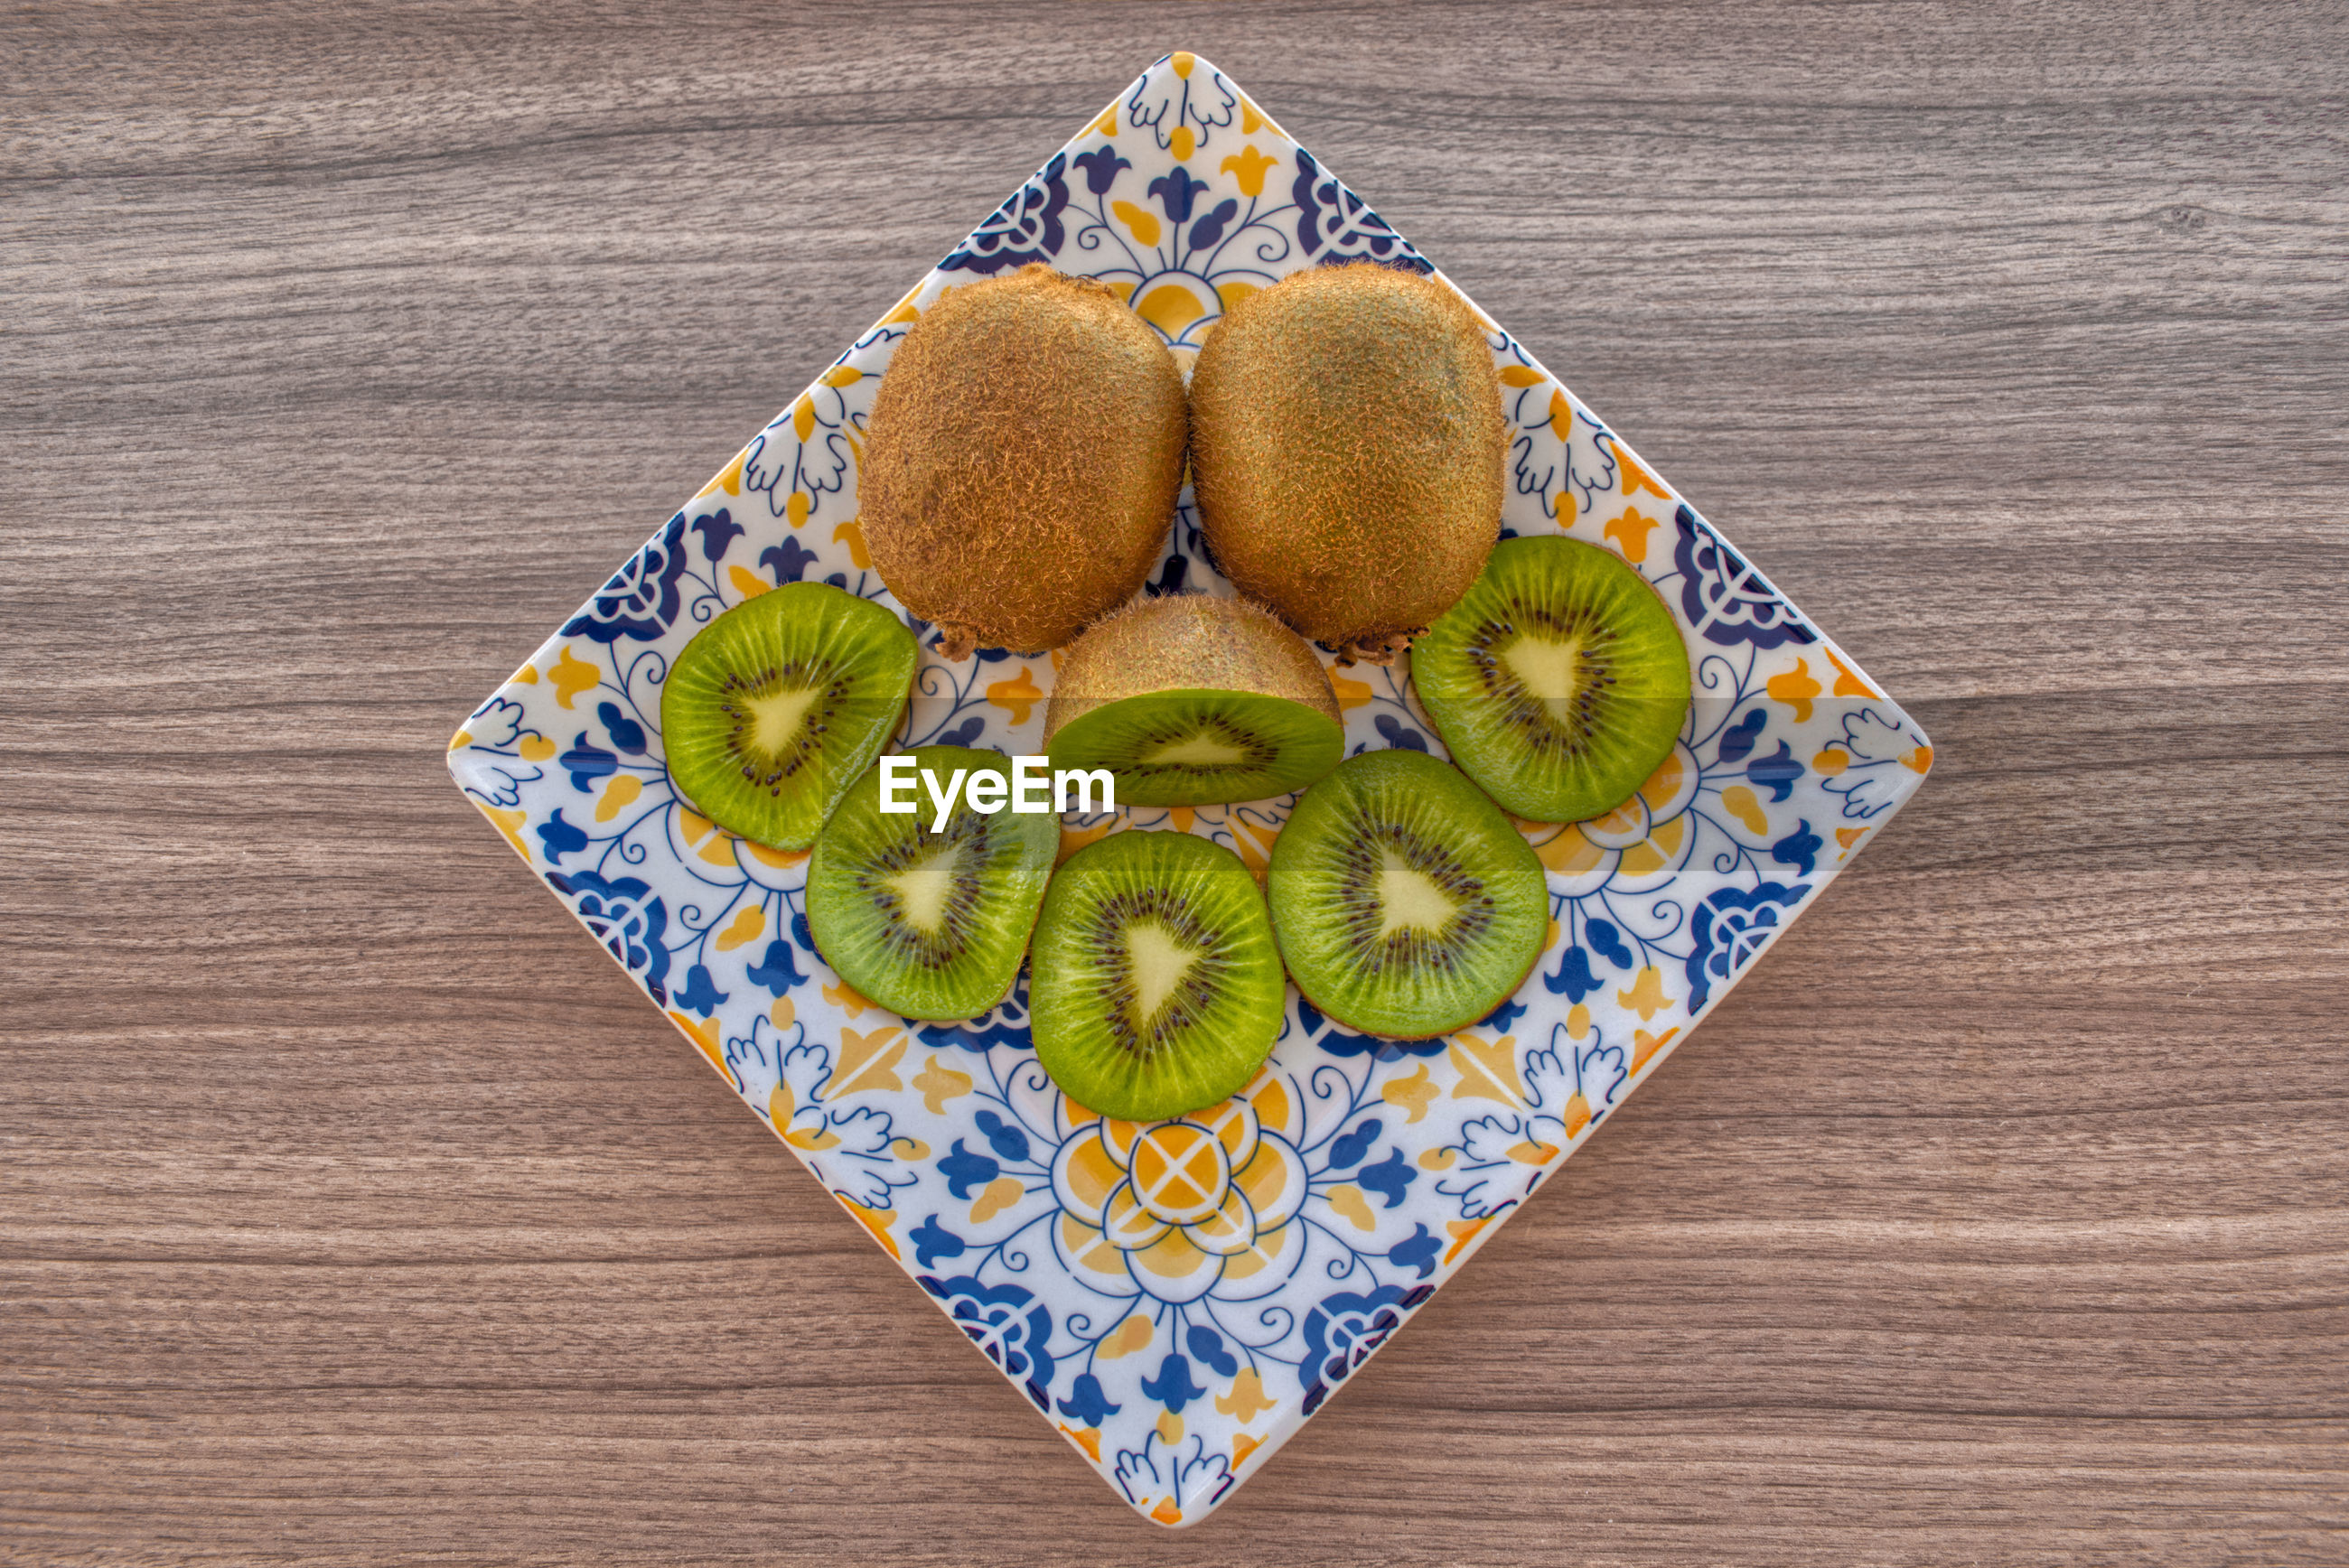 Fresh kiwi in a porcelain plate on wooden table